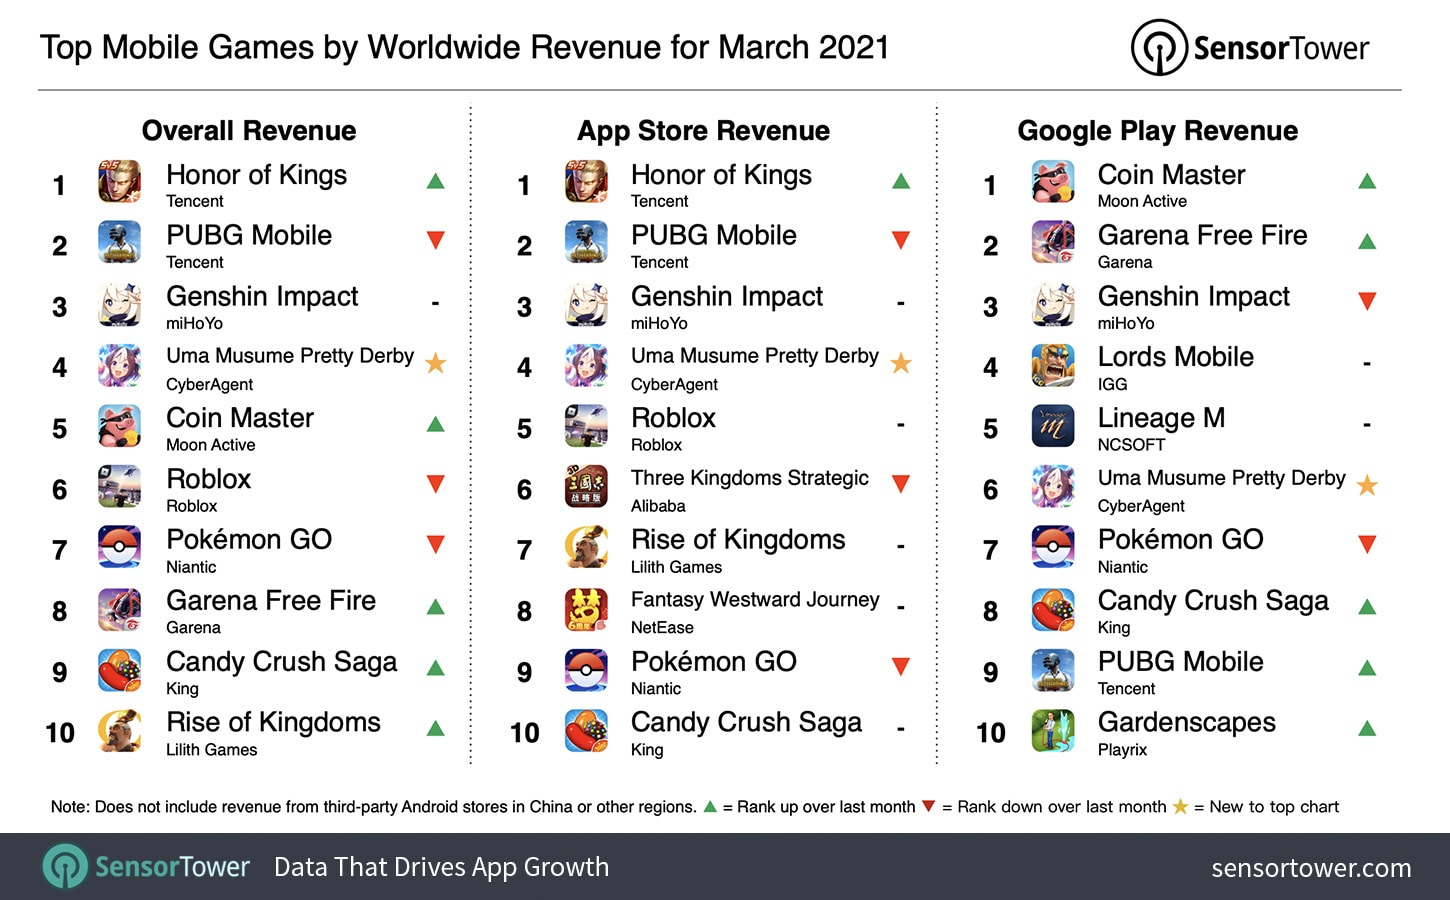 top-mobile-games-by-worldwide-revenue-march-2021